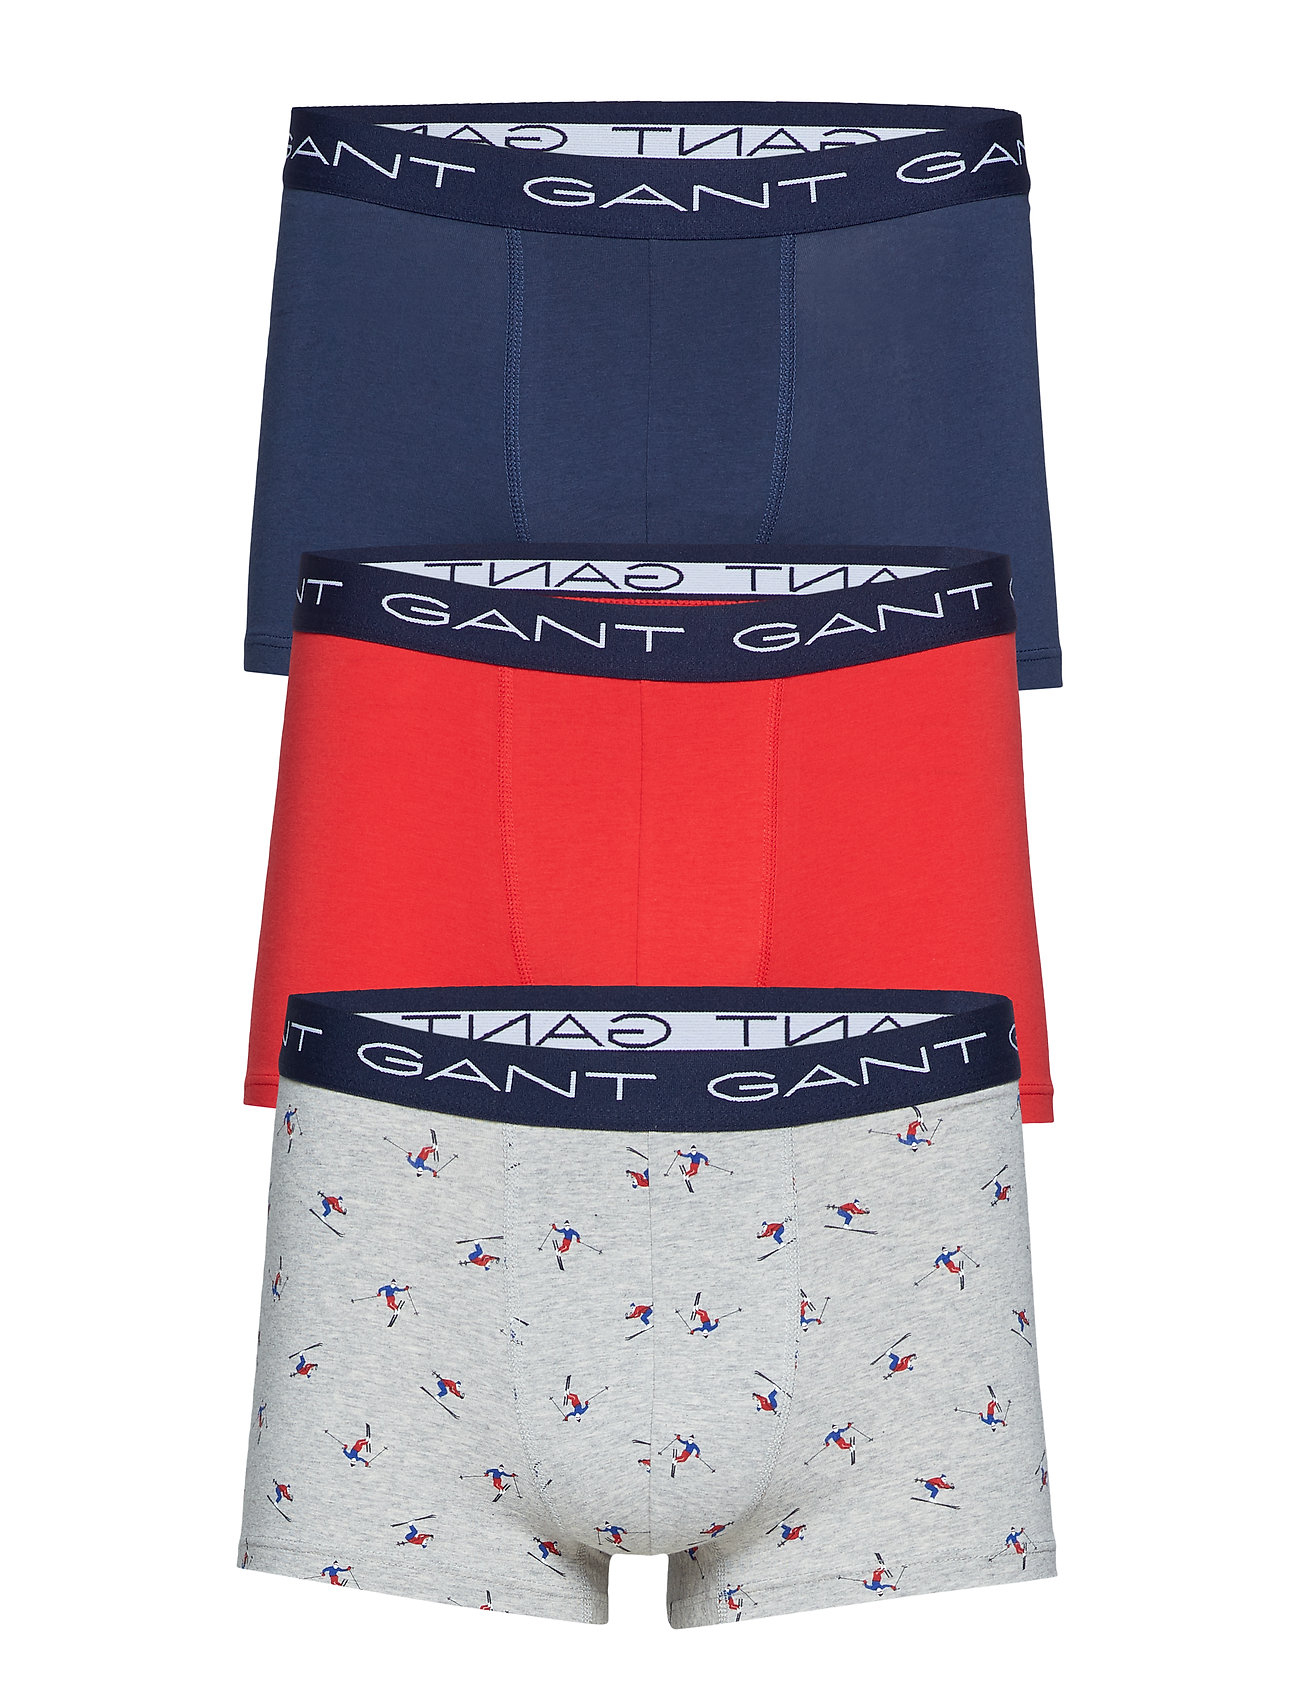 GANT 3-PACK TRUNK SKIER GIFT BOX - GREY MELANGE